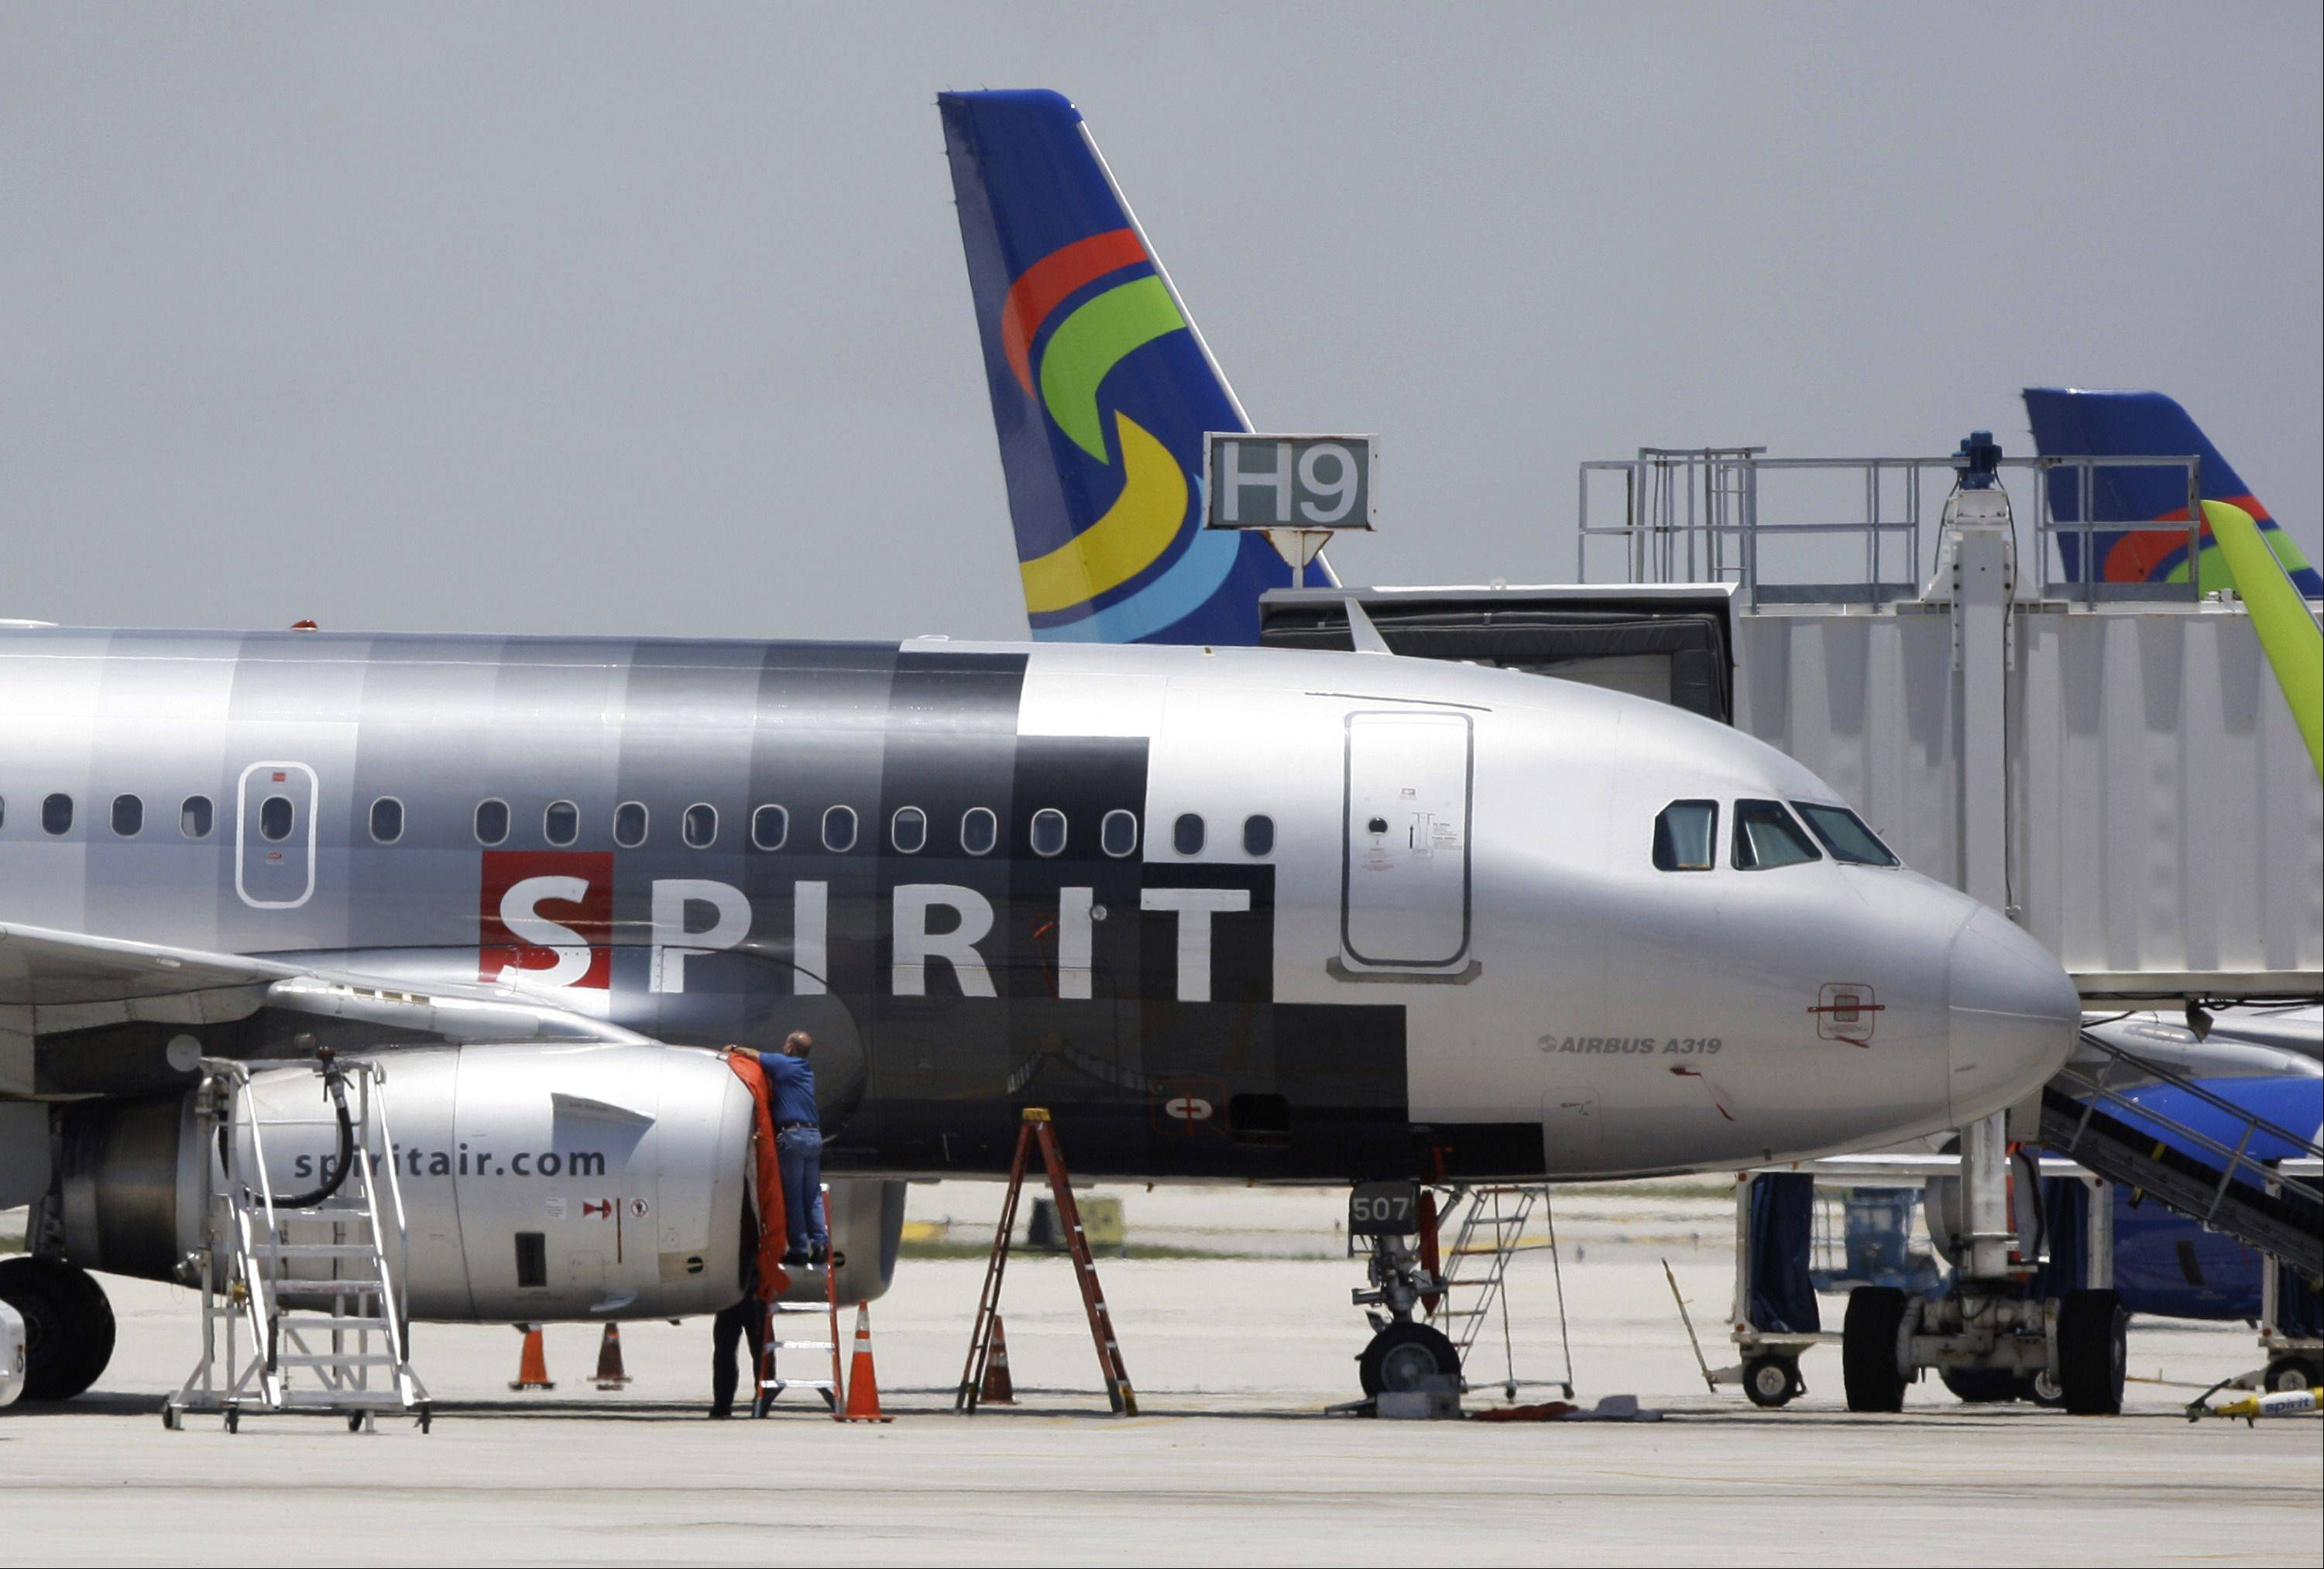 Spirit Airlines Inc. and Southwest Airlines Co. lost a challenge to U.S. rules requiring carriers to prominently display the total cost of a ticket, including taxes, when advertising airfares.